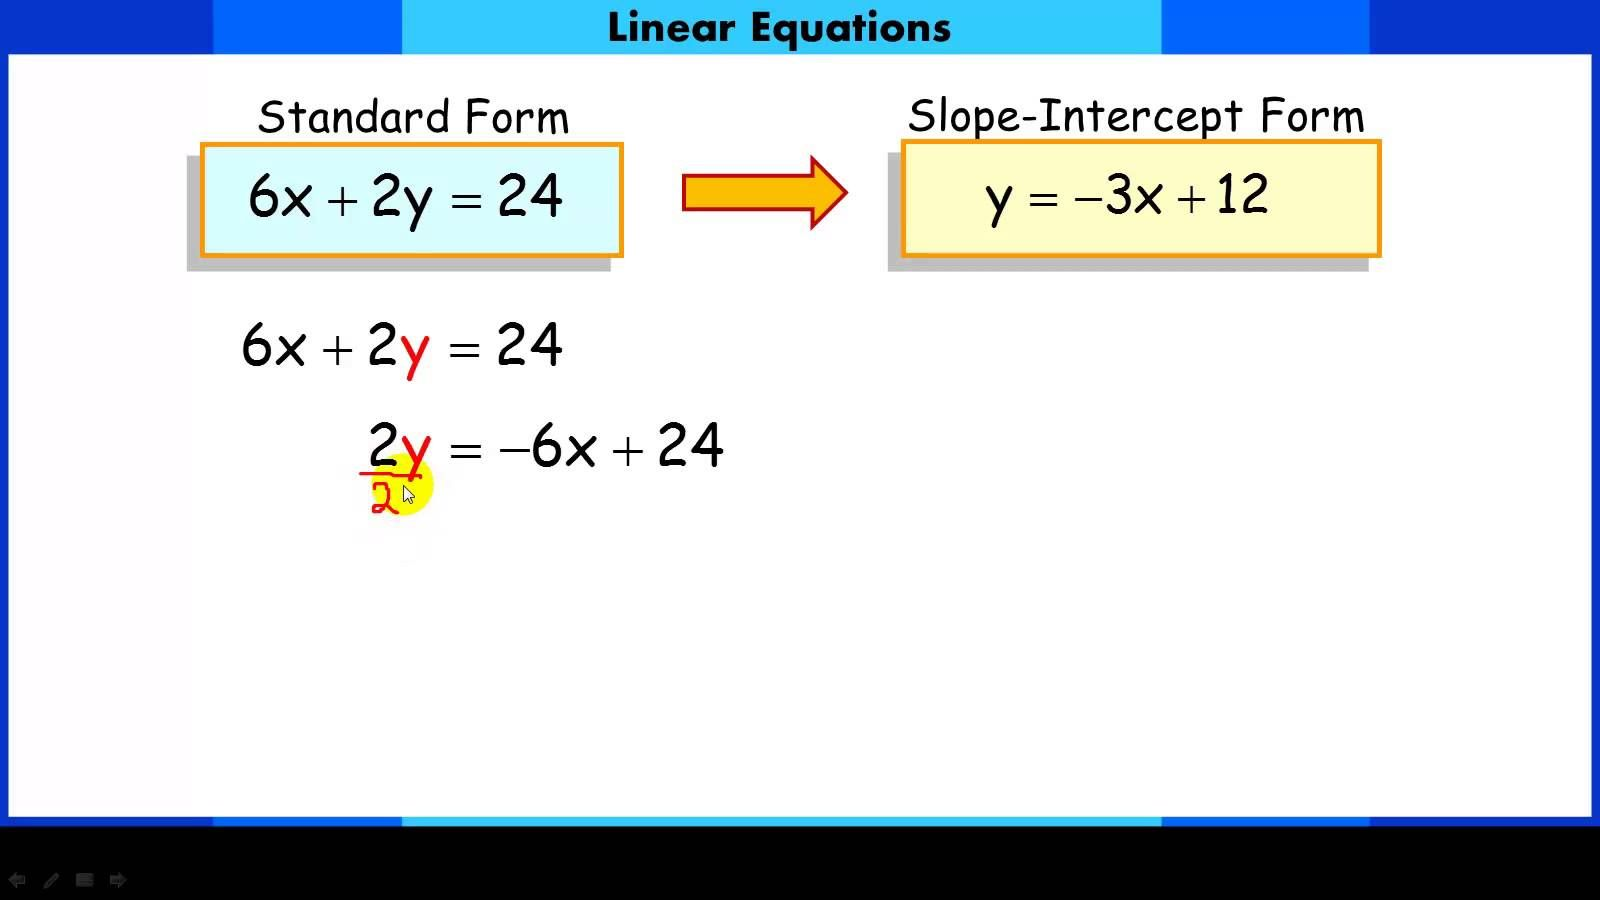 slope intercept form standard form  Converting Linear Equations from Standard Form to Slope ...